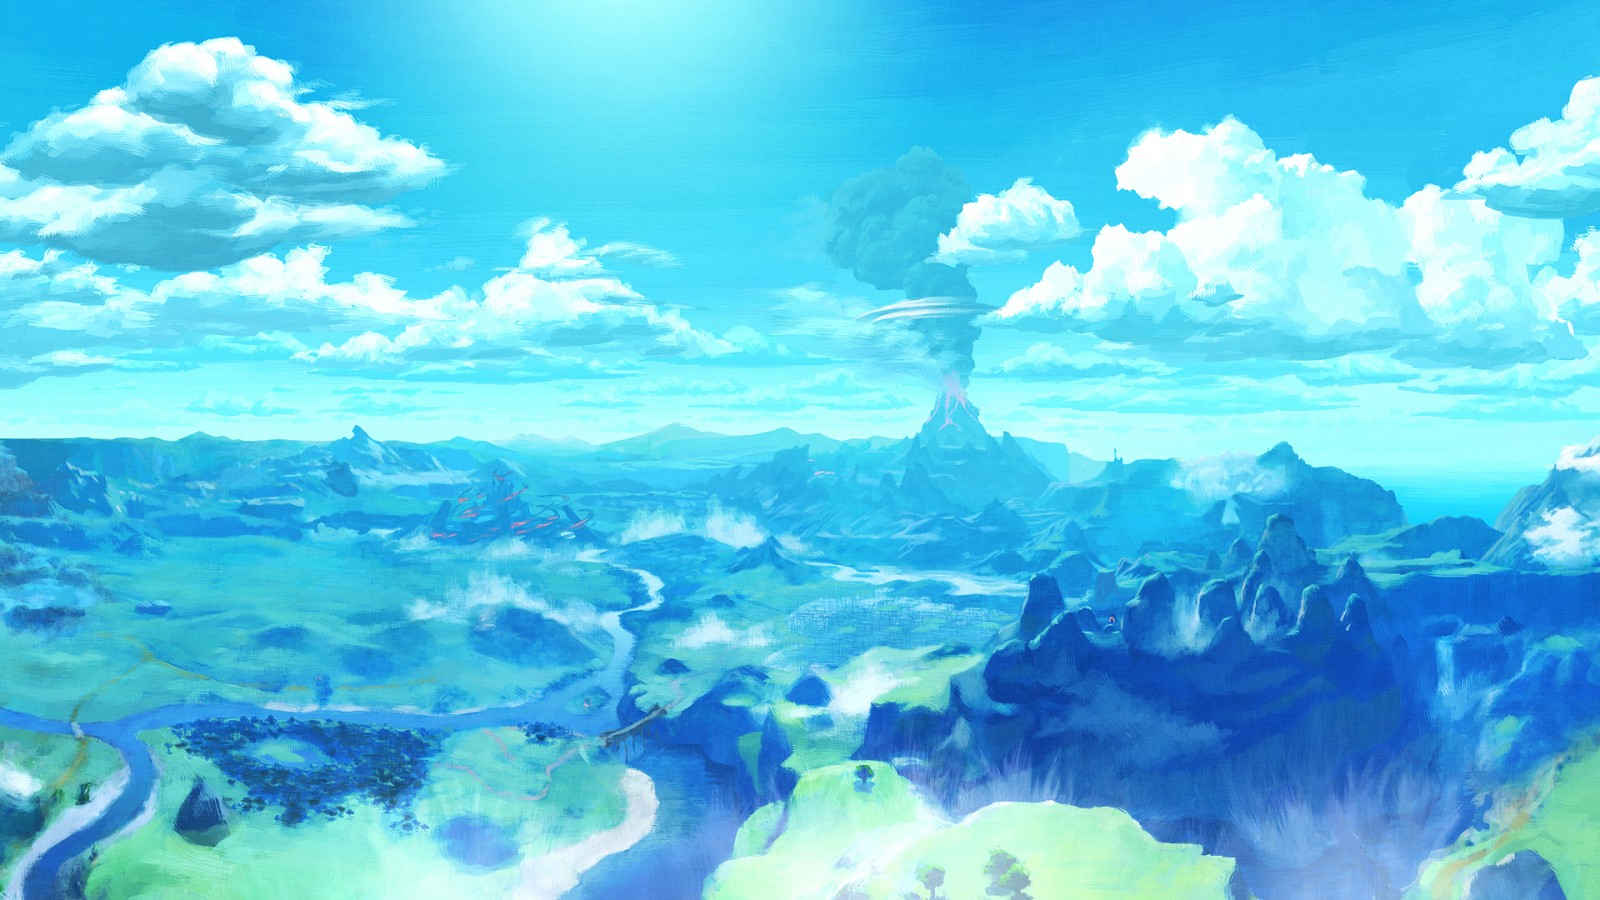 Wallpapers Breath Of The Wild Zelda S Palace